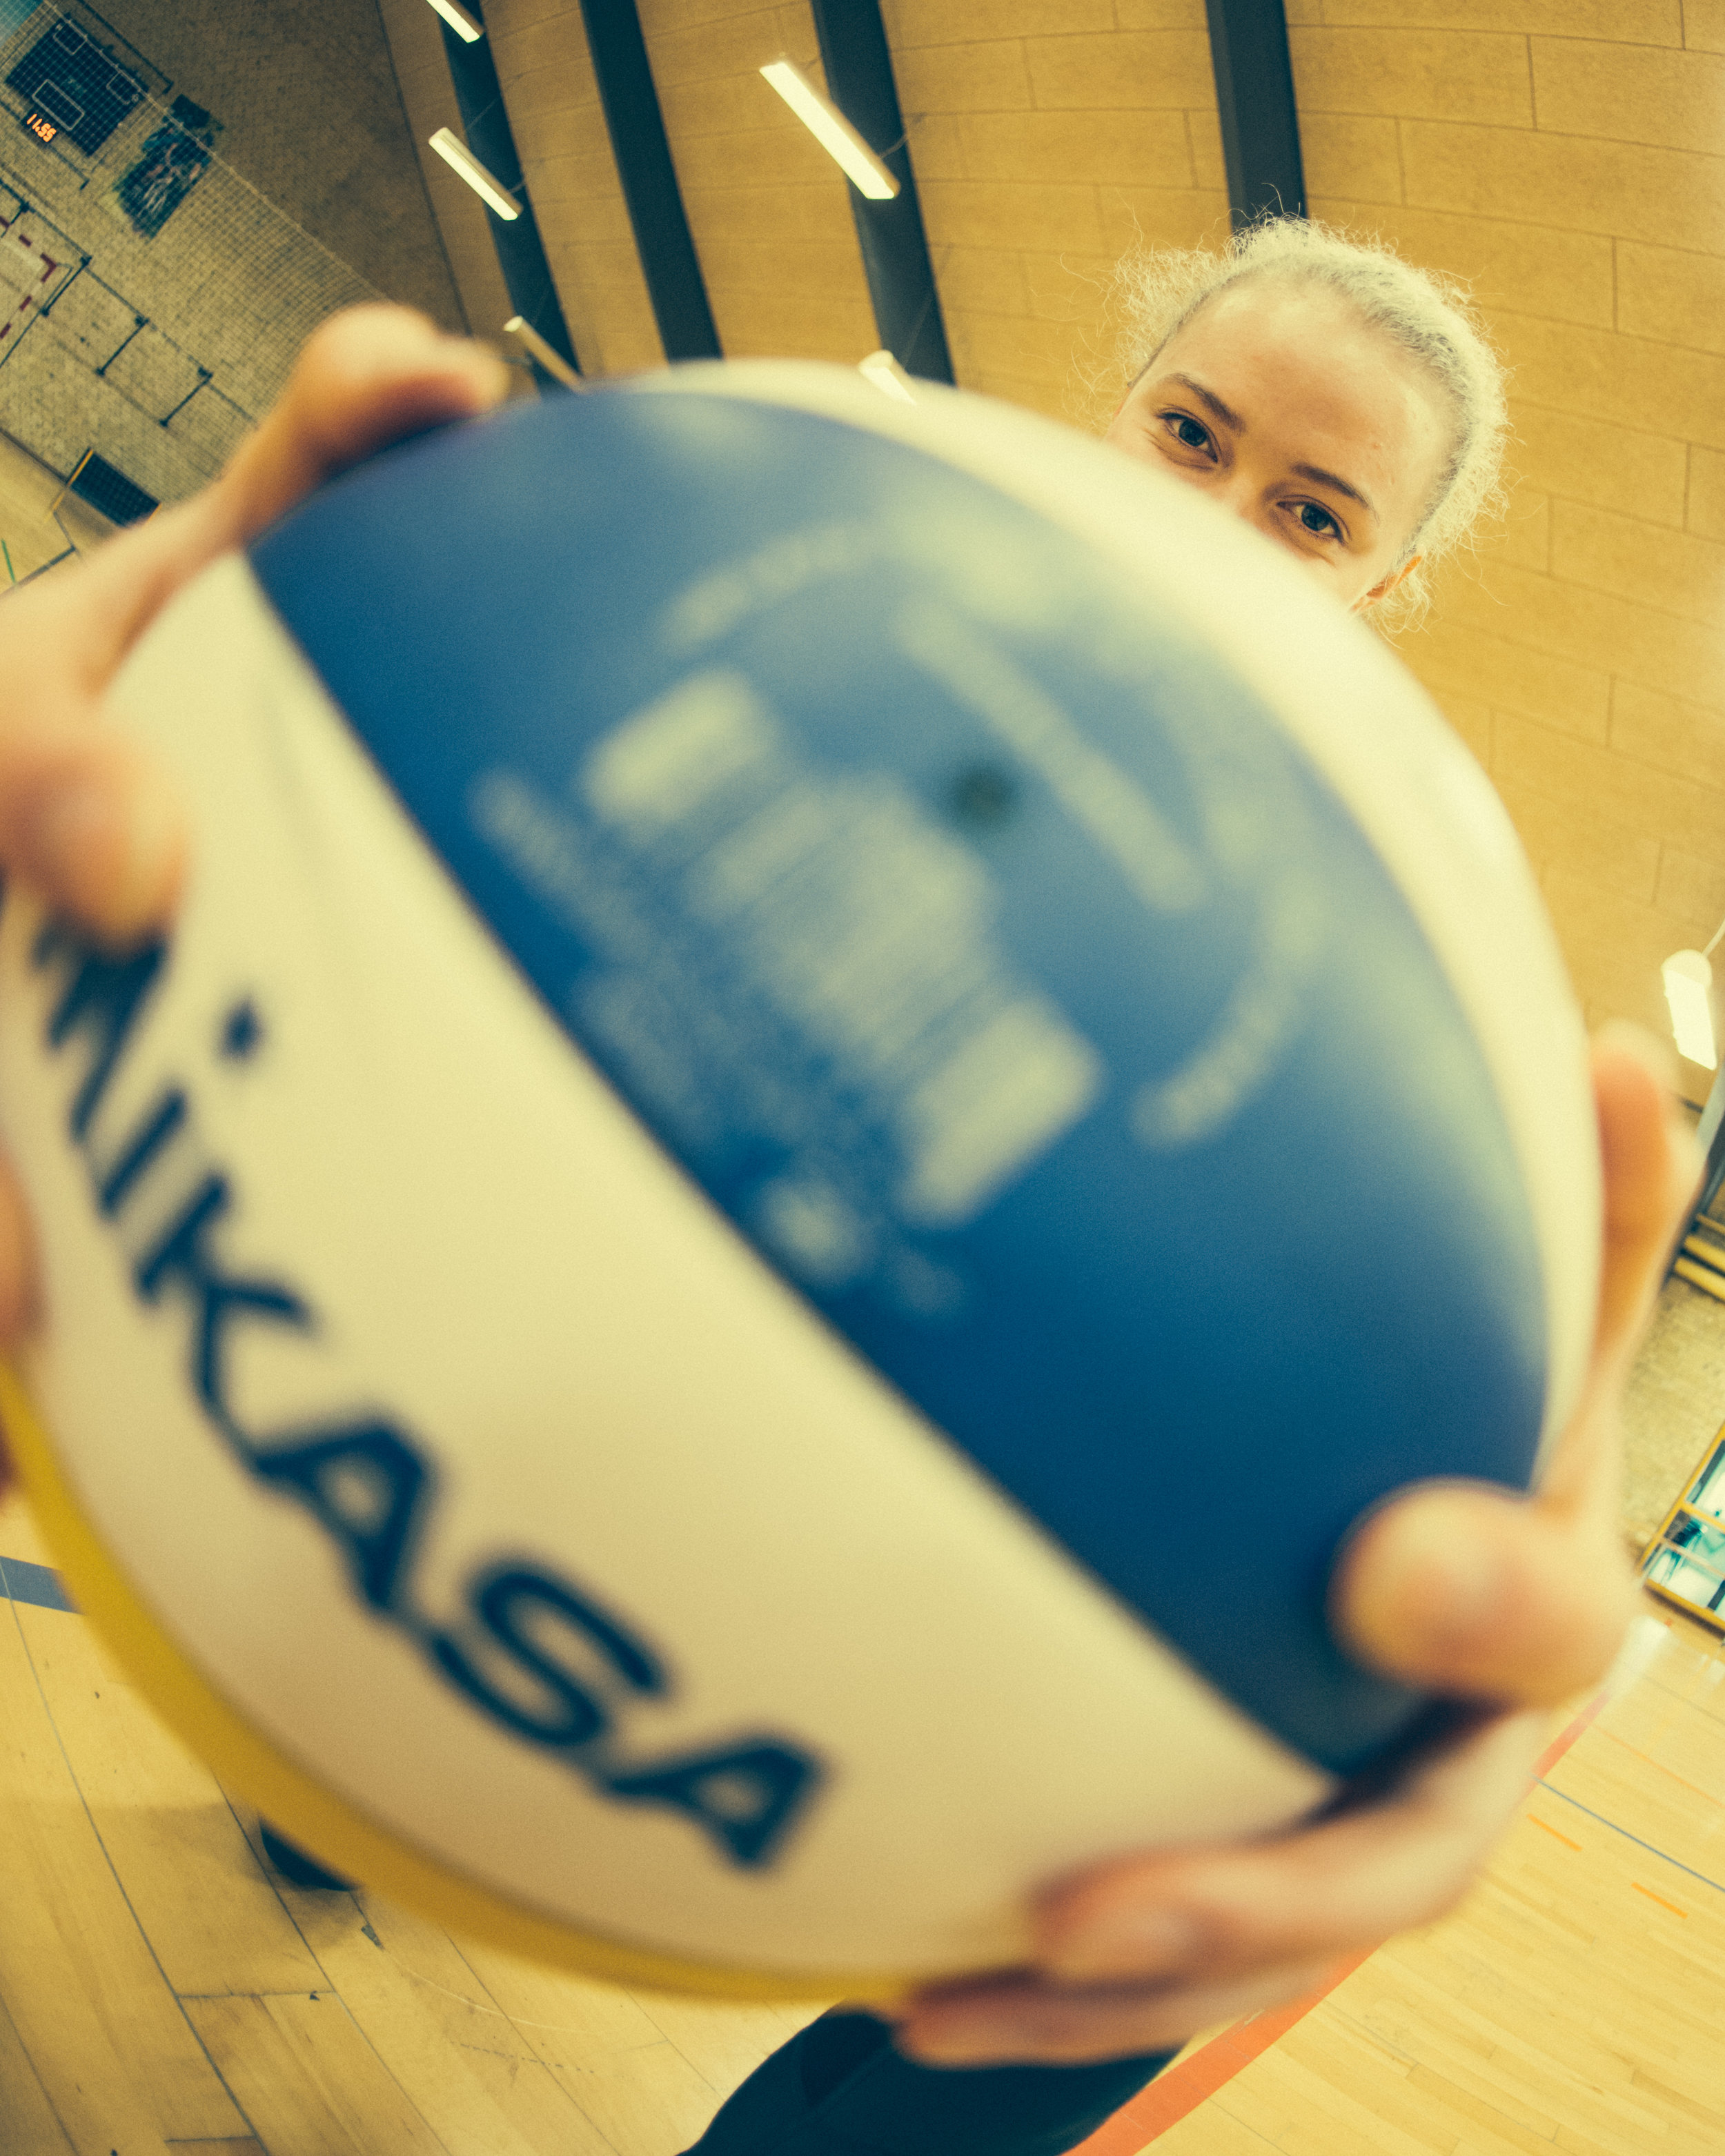 Gerlev_volleypige-7675.jpg